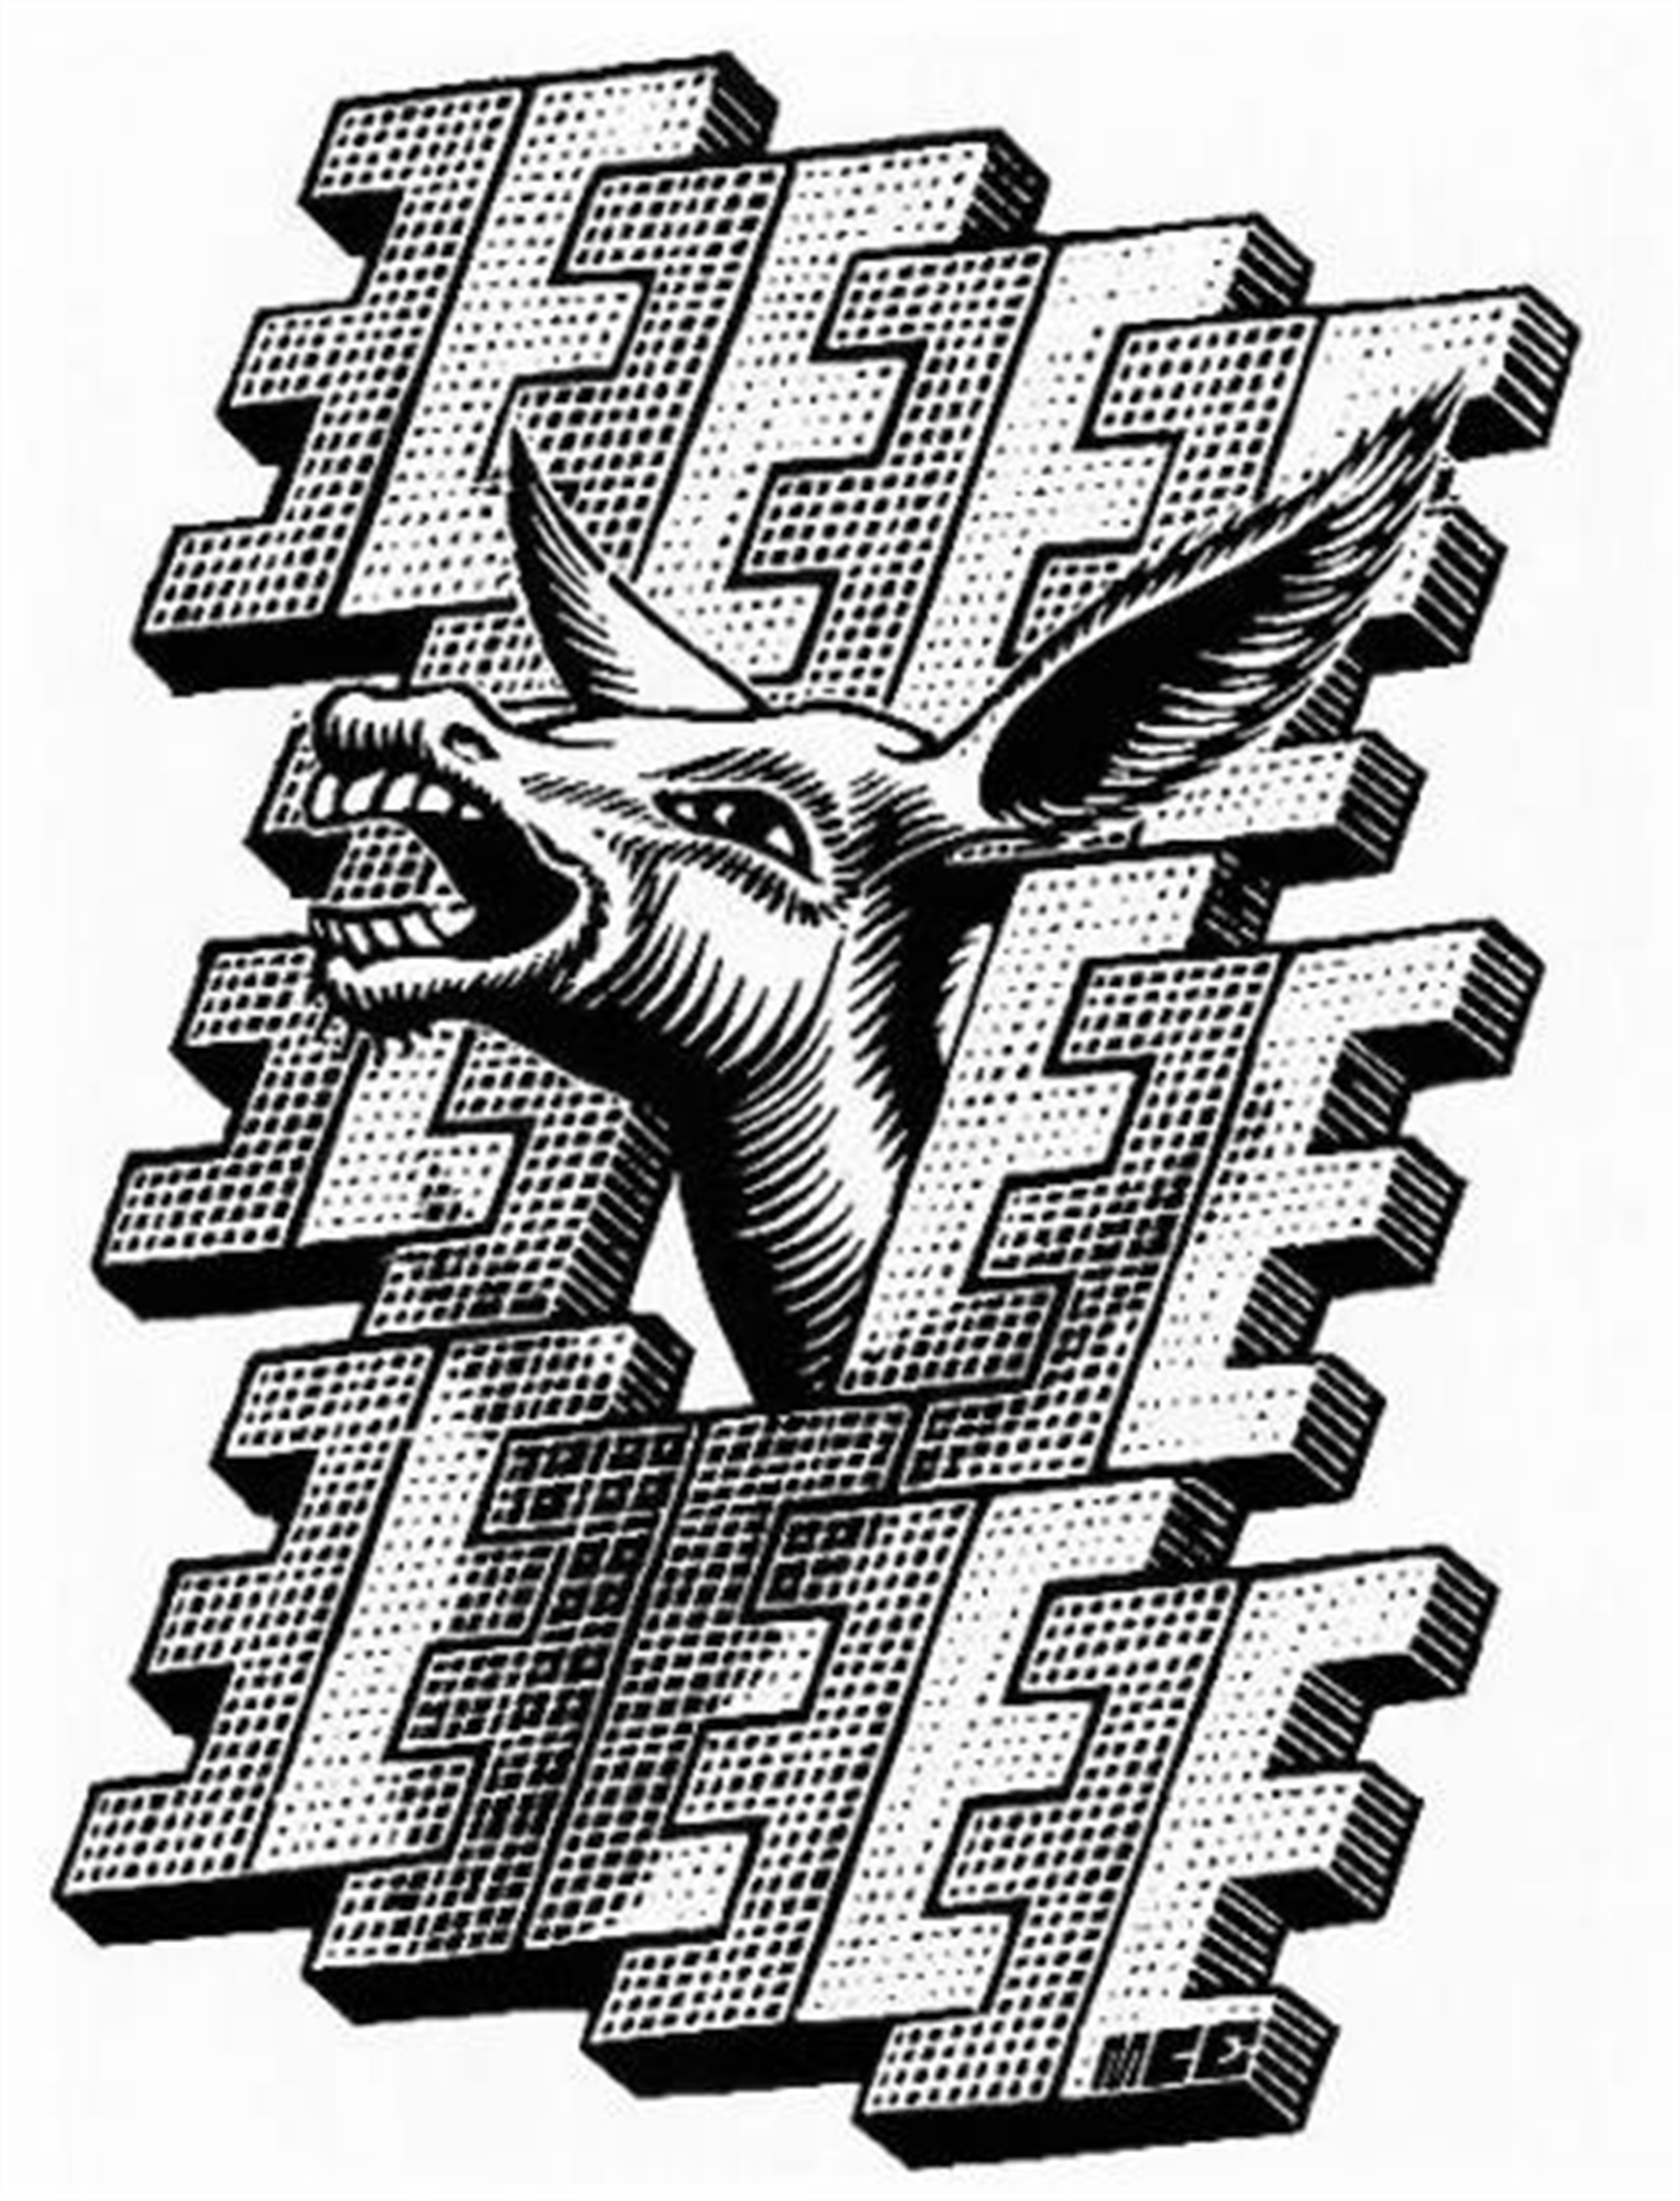 E is for Ezel (Donkey) by M.C. Escher